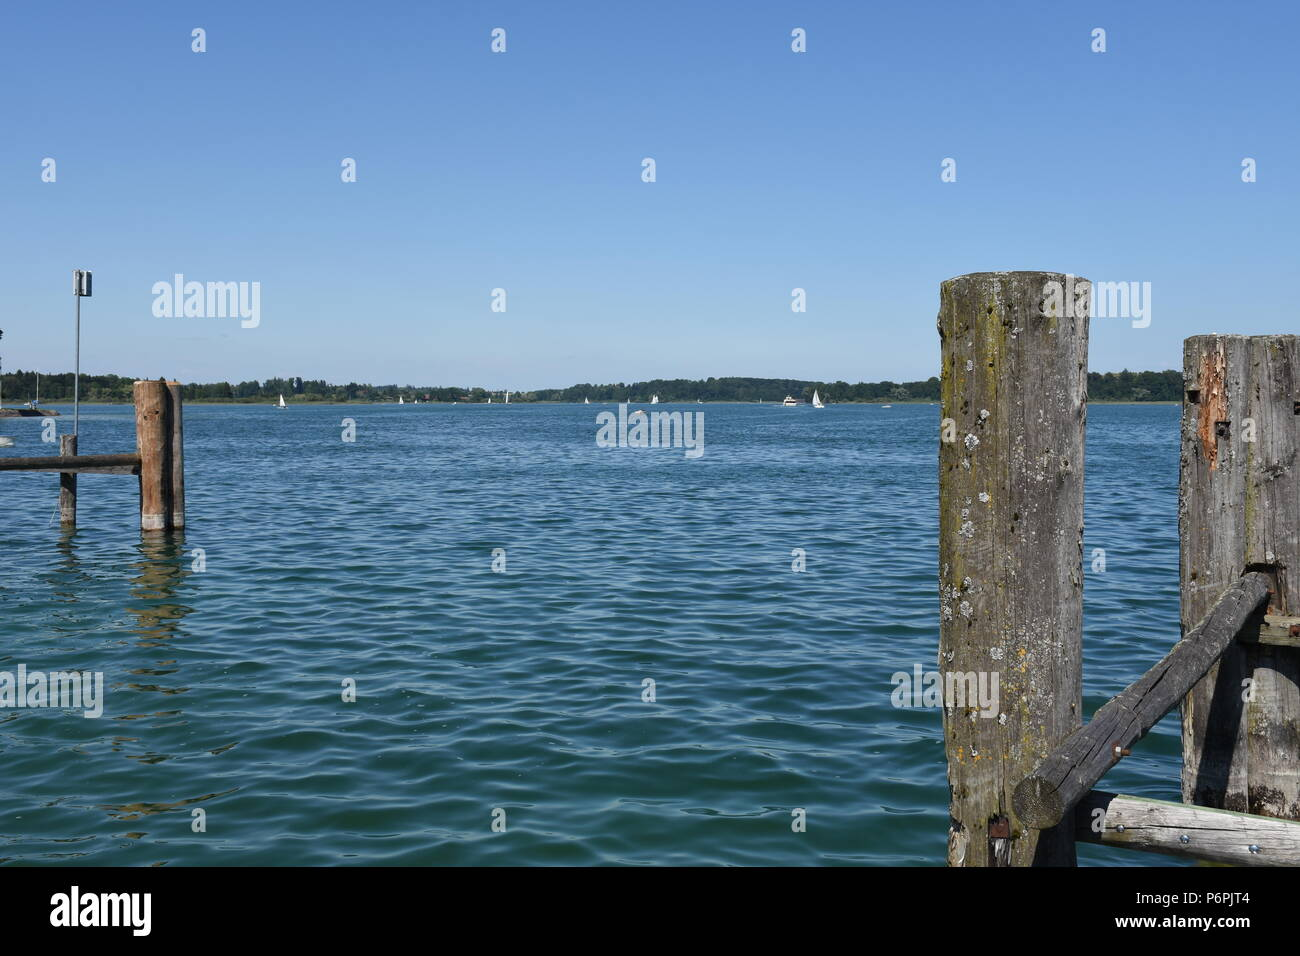 Chiemsee bei Prien in Oberbayern - Stock Image